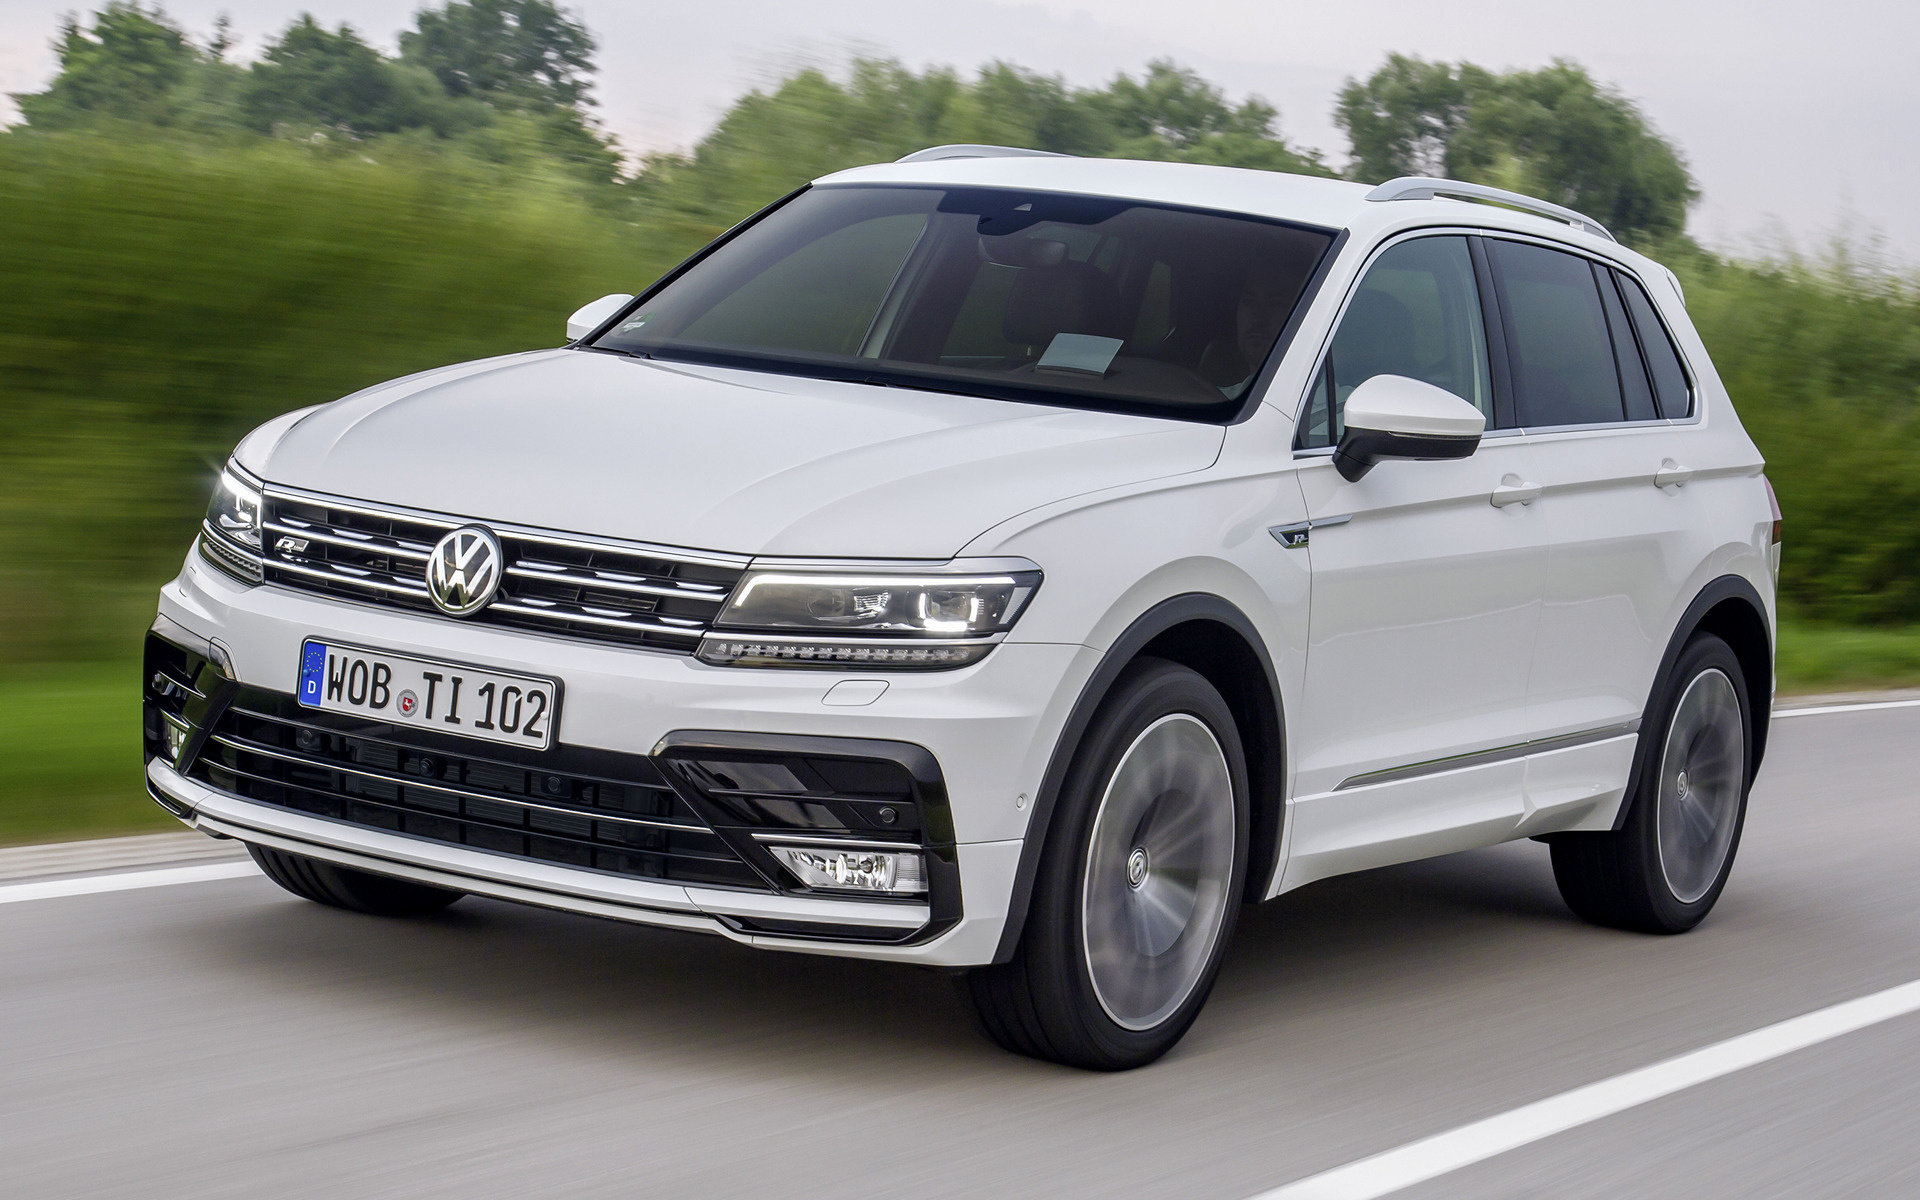 volkswagen tiguan r line 2016 wallpapers and hd images. Black Bedroom Furniture Sets. Home Design Ideas